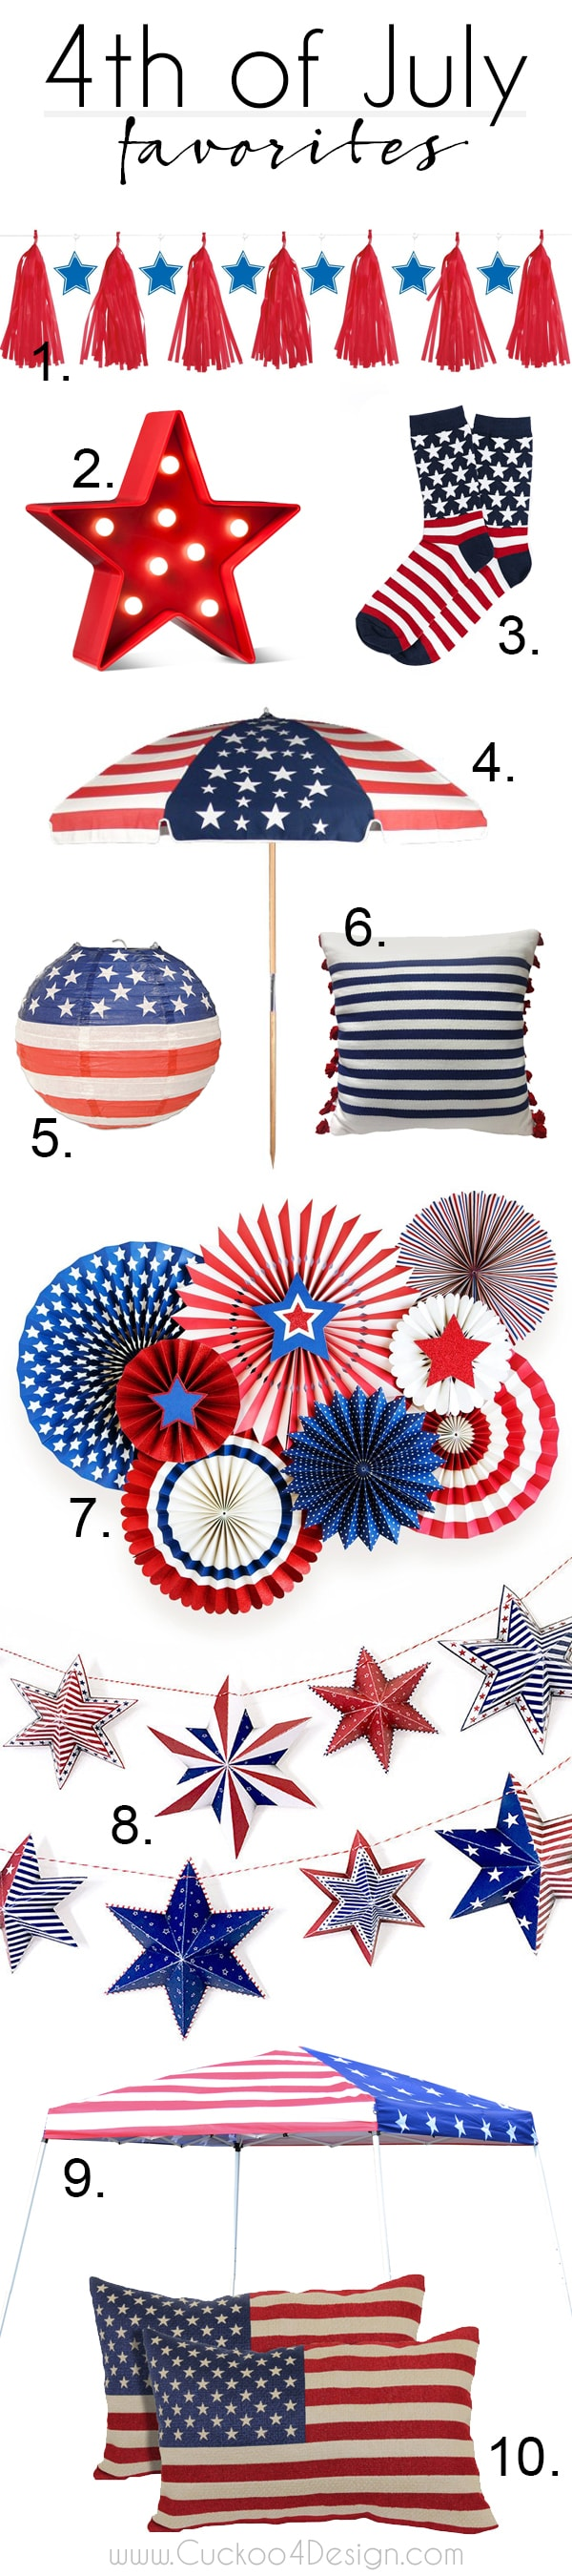 favorites for 4th of July